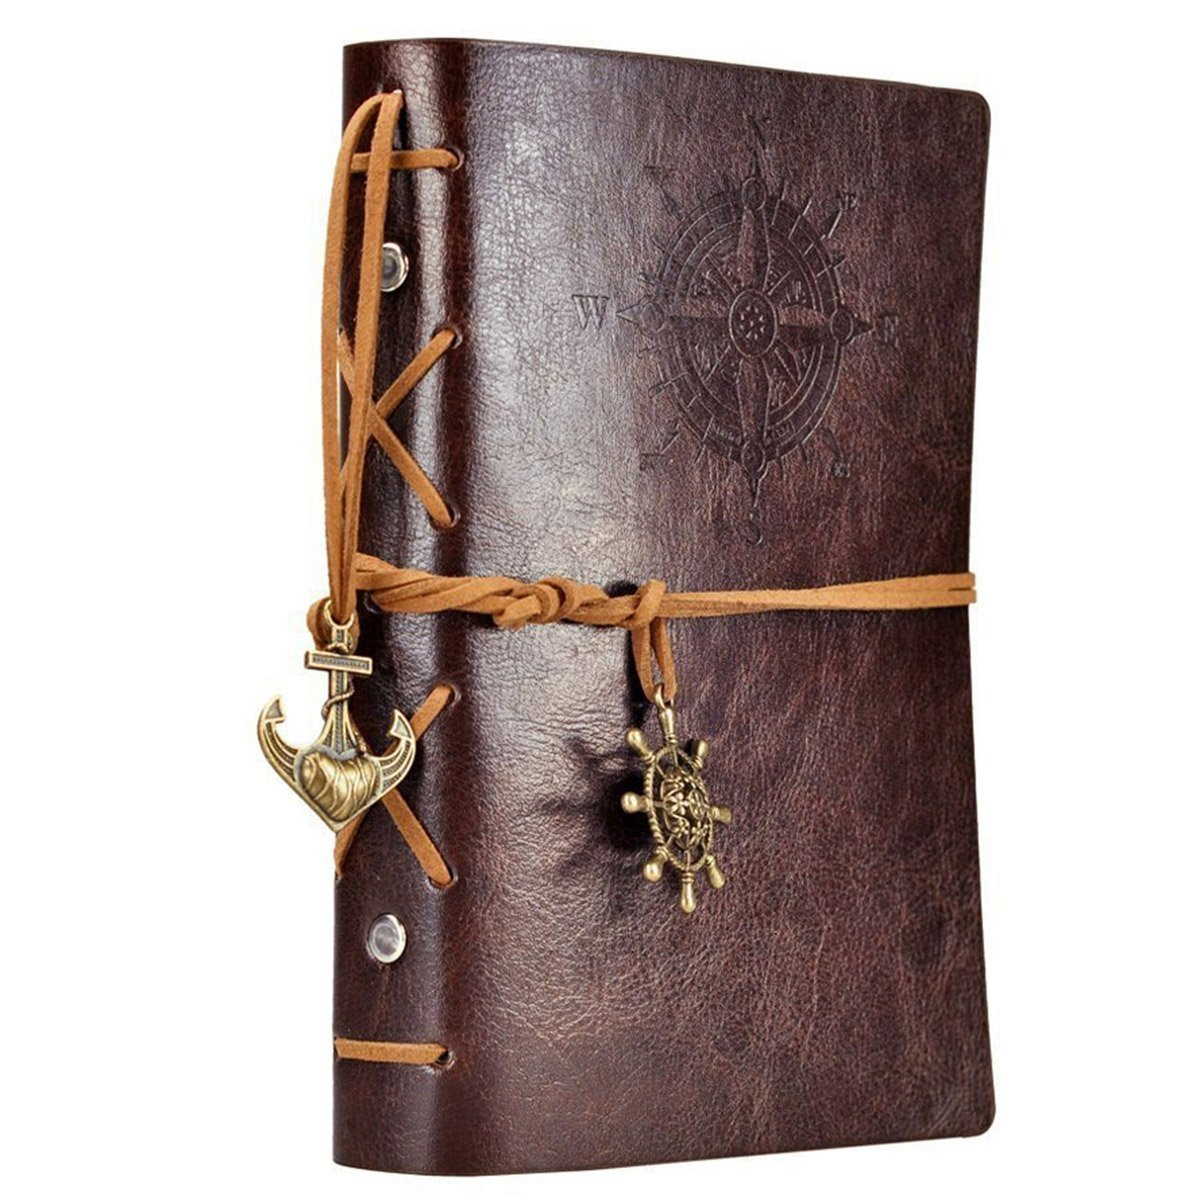 Ai-life Vintage Retro Nautical Pattern PU Leather Cover Notebook Writing Journal Diary, Vintage Spiral Blank Daily Notepad, Unlined Paper, Retro Pendants, Classic Embossed, Loose Leaf